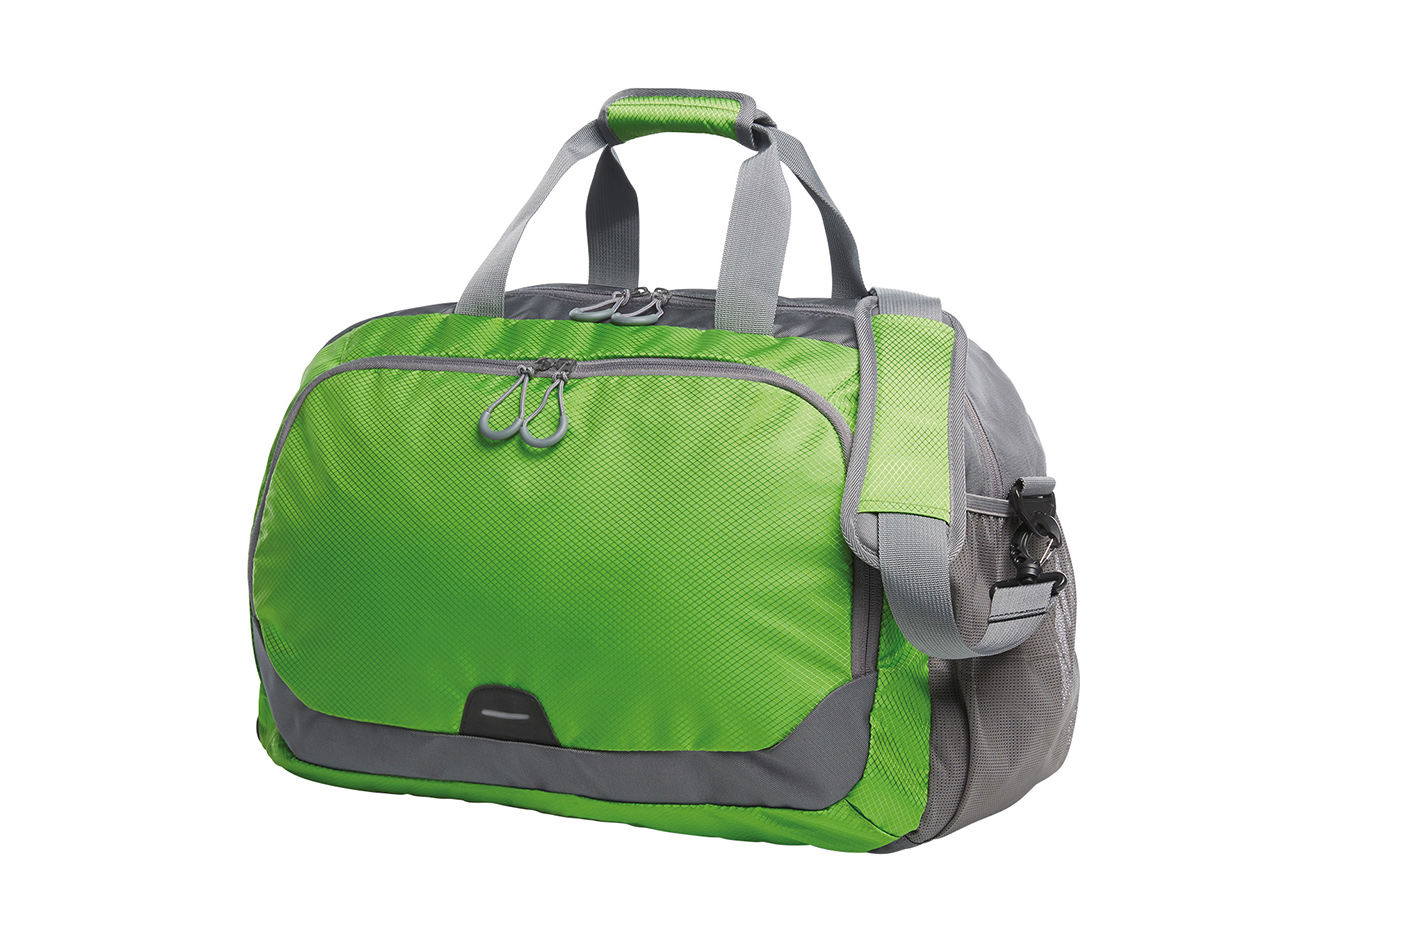 Green and Grey Sports Travel Bag